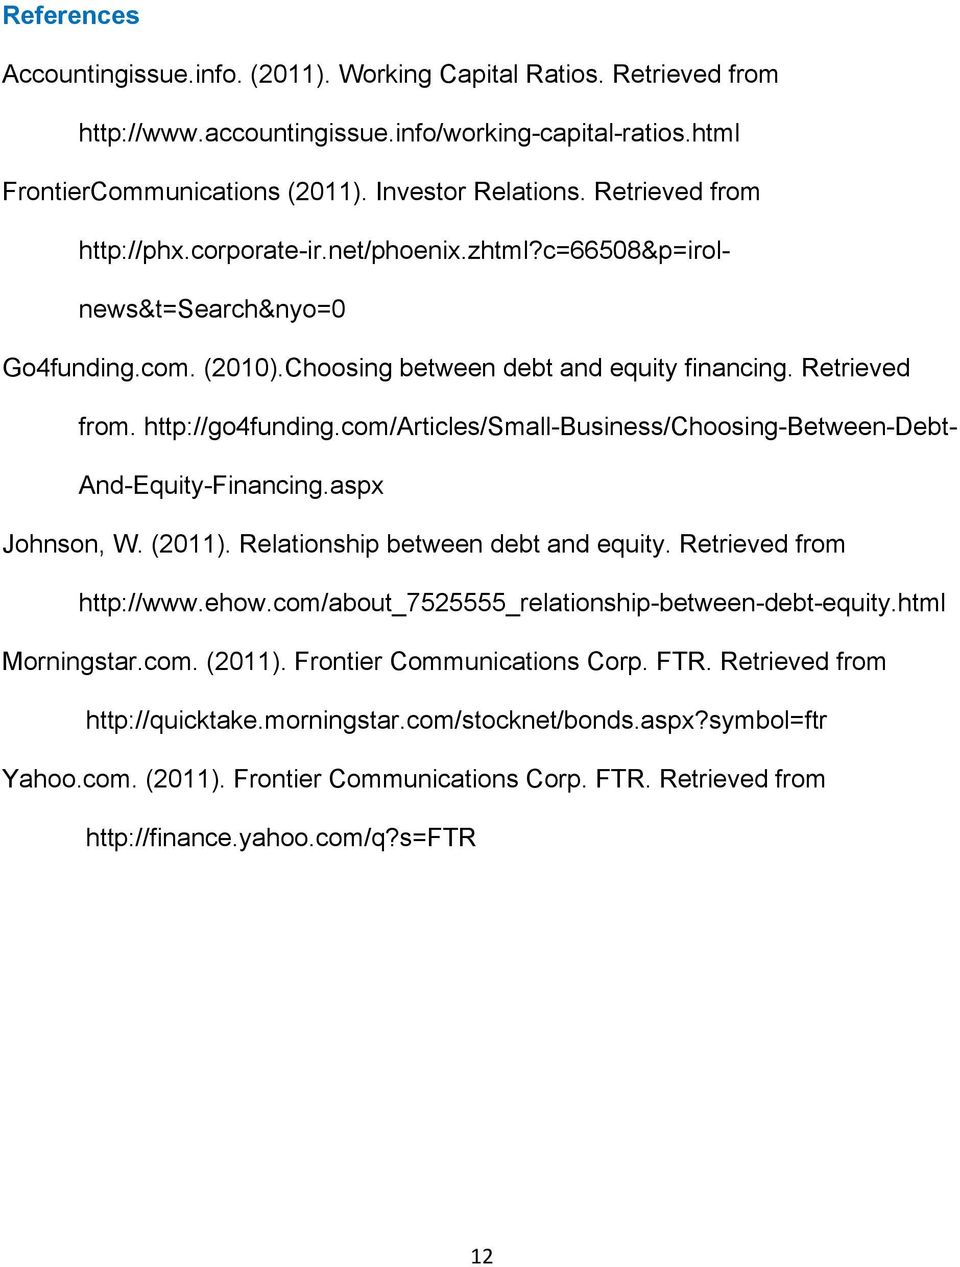 Financial Analysis For Frontier Communications Corp Ftr Pdf